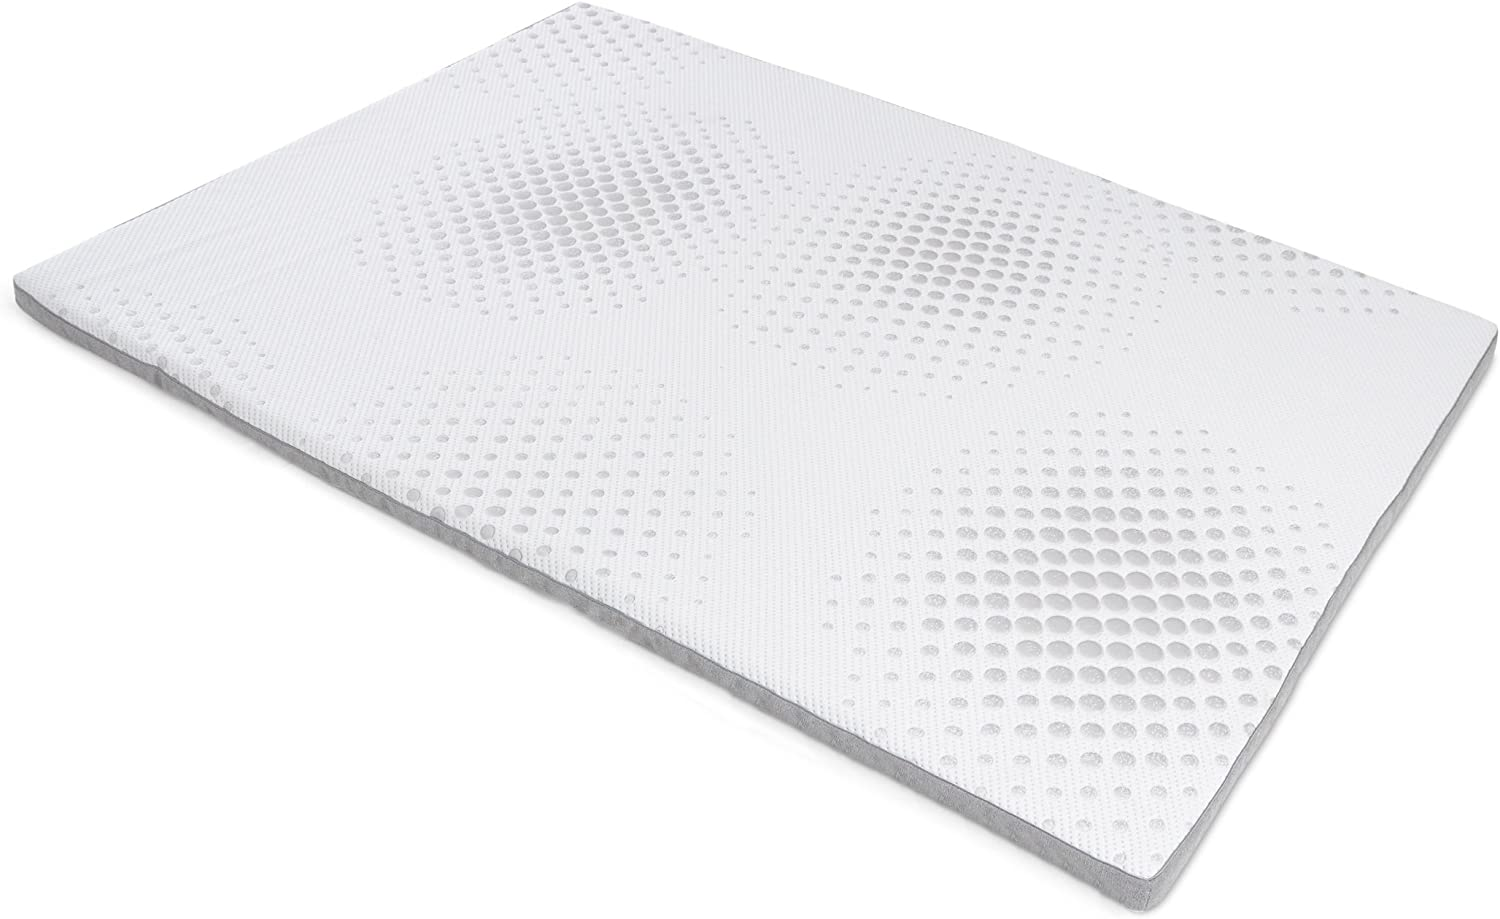 Milliard 2-Inch Gel Memory Foam Mattress Topper